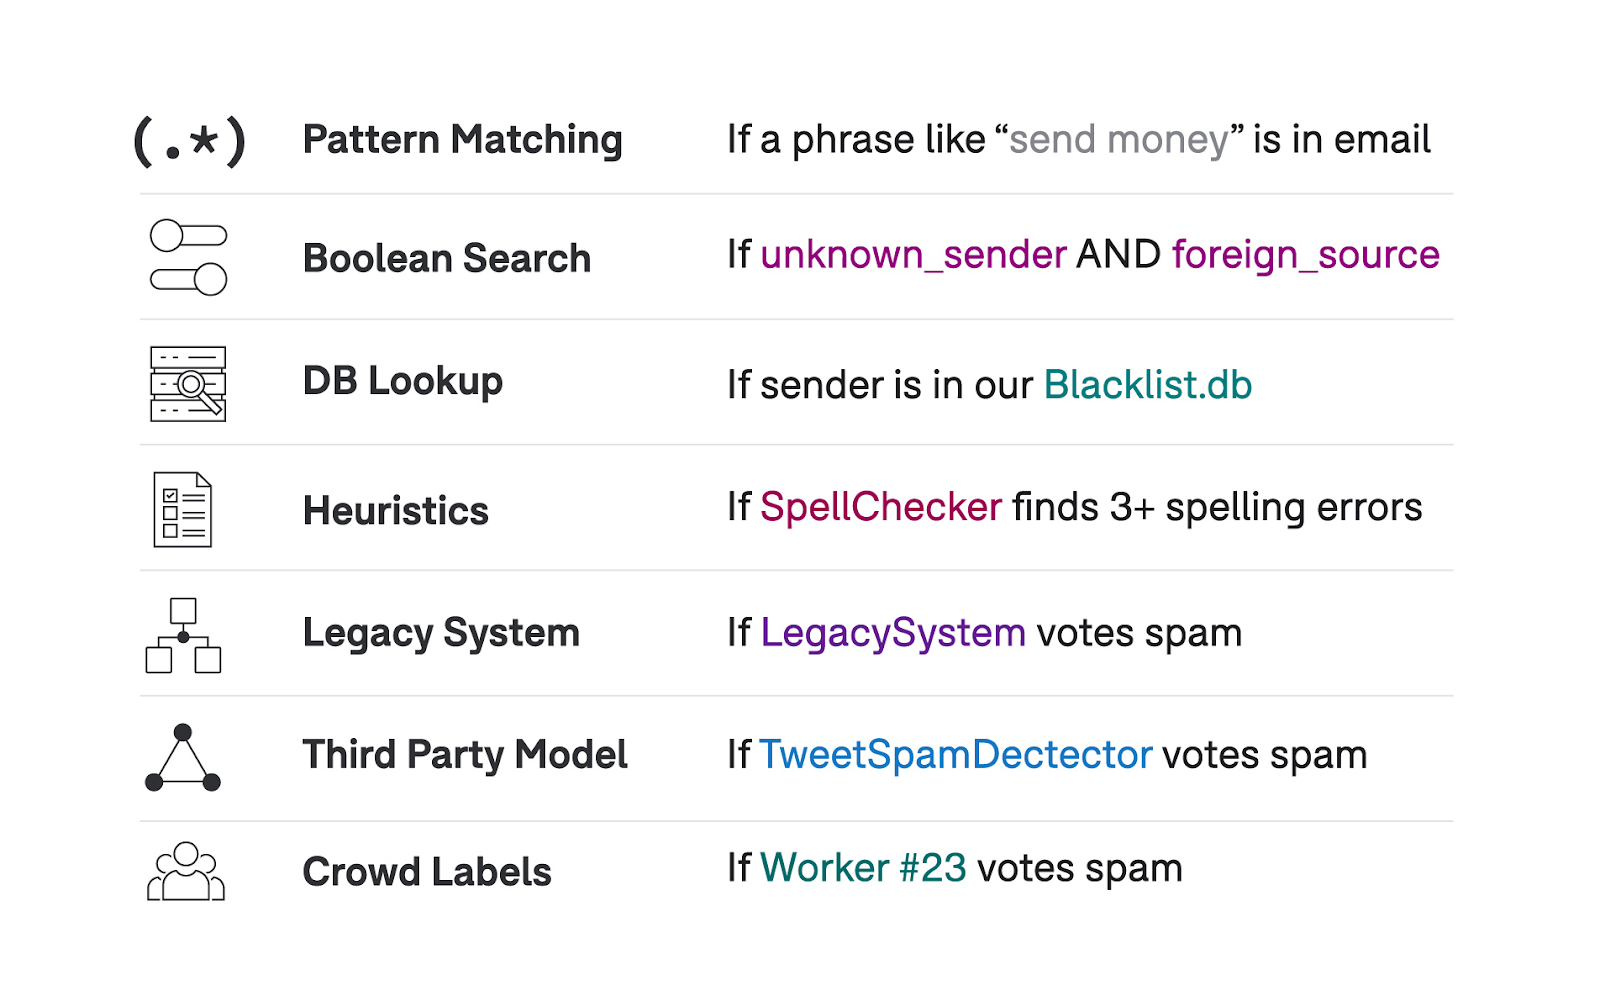 With Snorkel Flow, you can perform many types of AI tasks, such as pattern matching, boolean search, DB lookups, heuristics, legacy systems, third party models, crowd labeling, and so on.